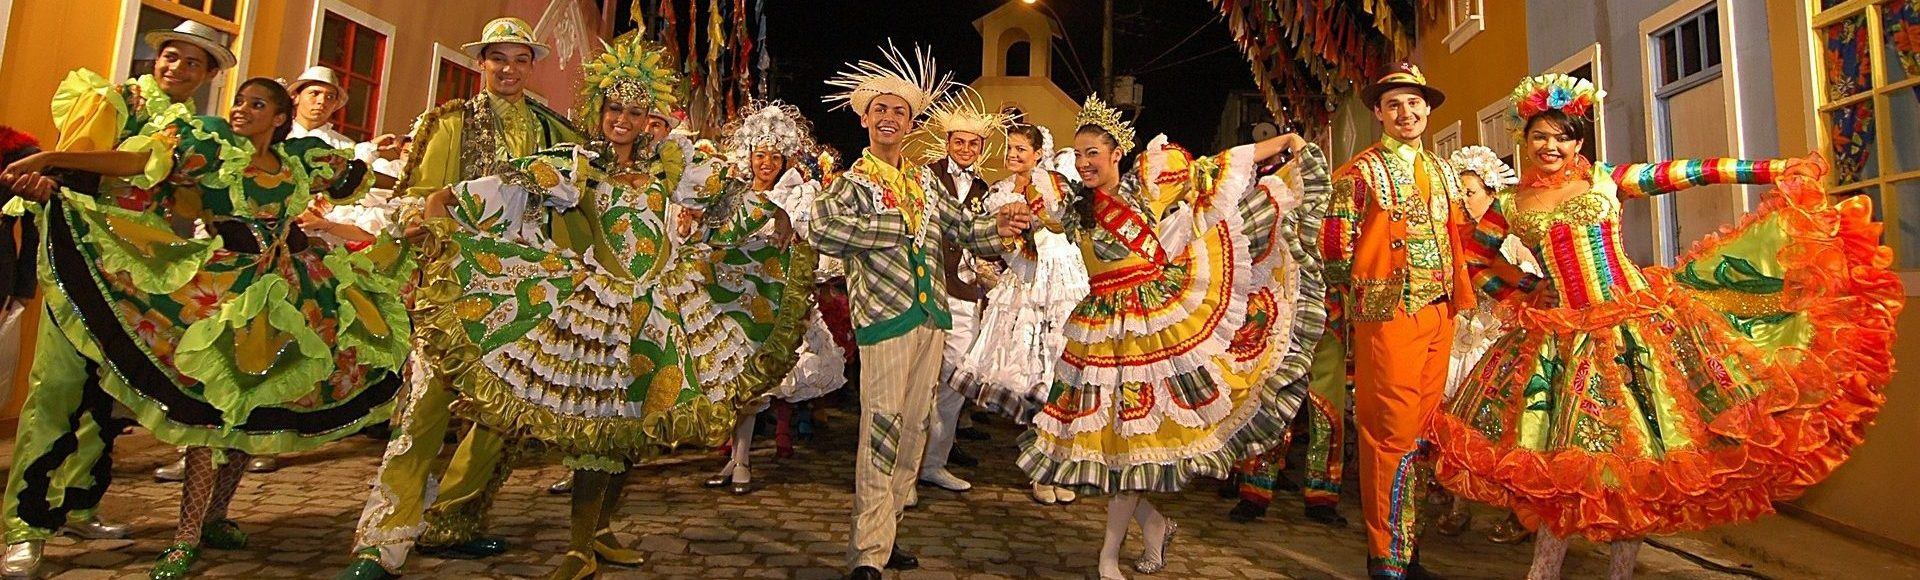 Carnival attracts more than 143,000 tourists to ceará